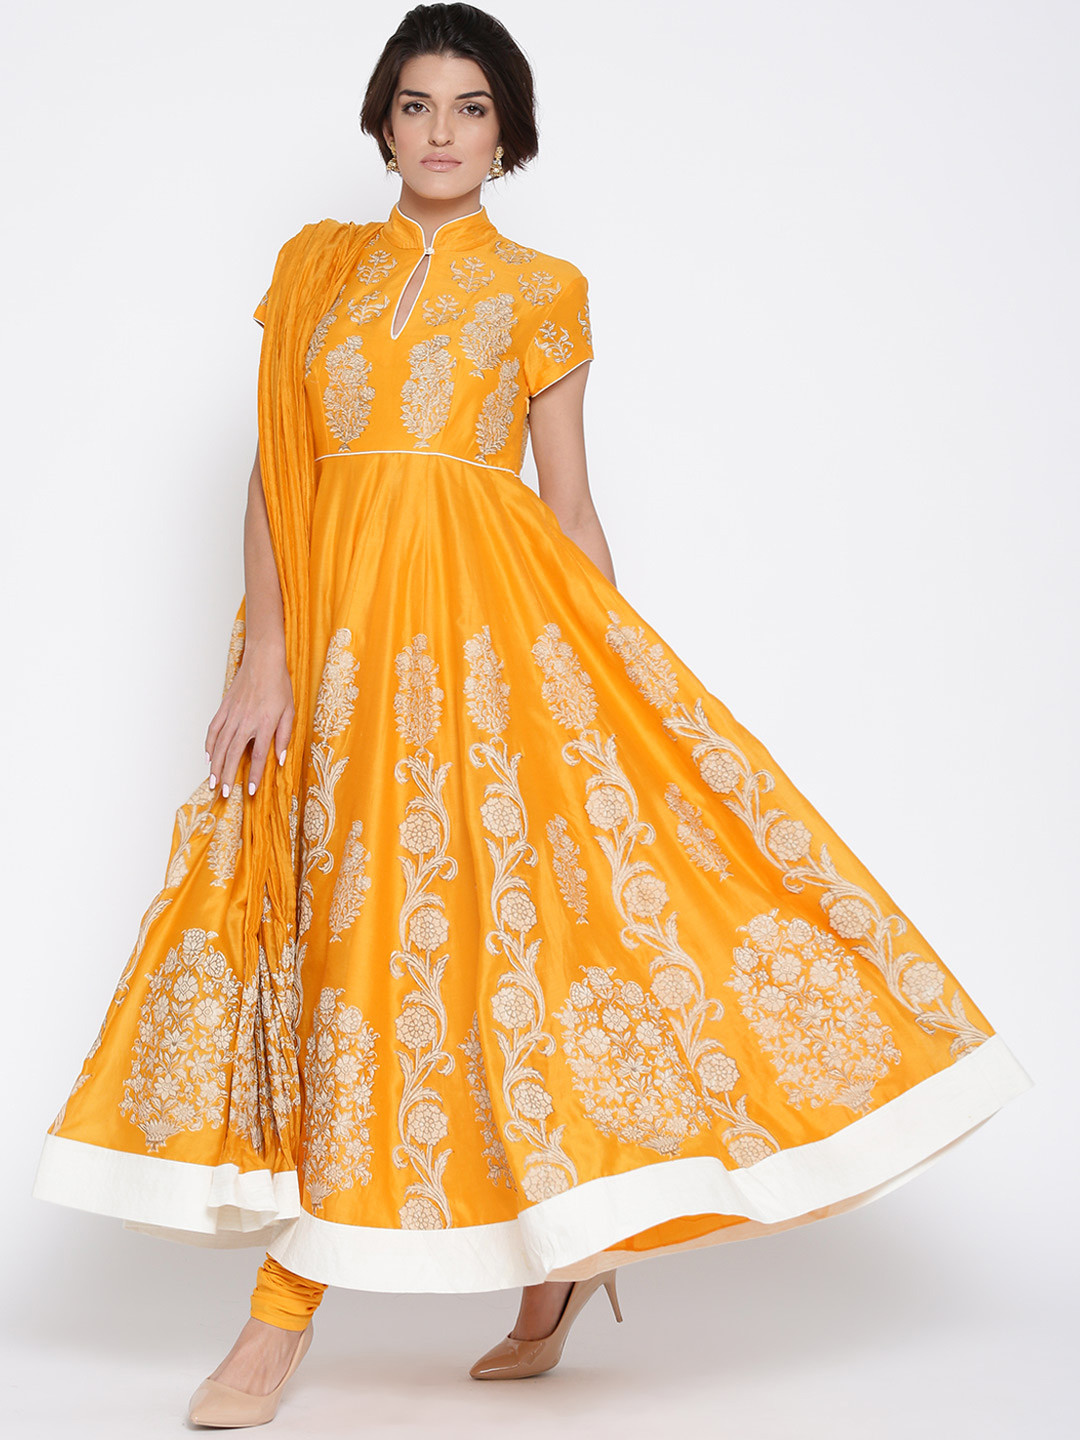 11 sangeet outfits for the bride